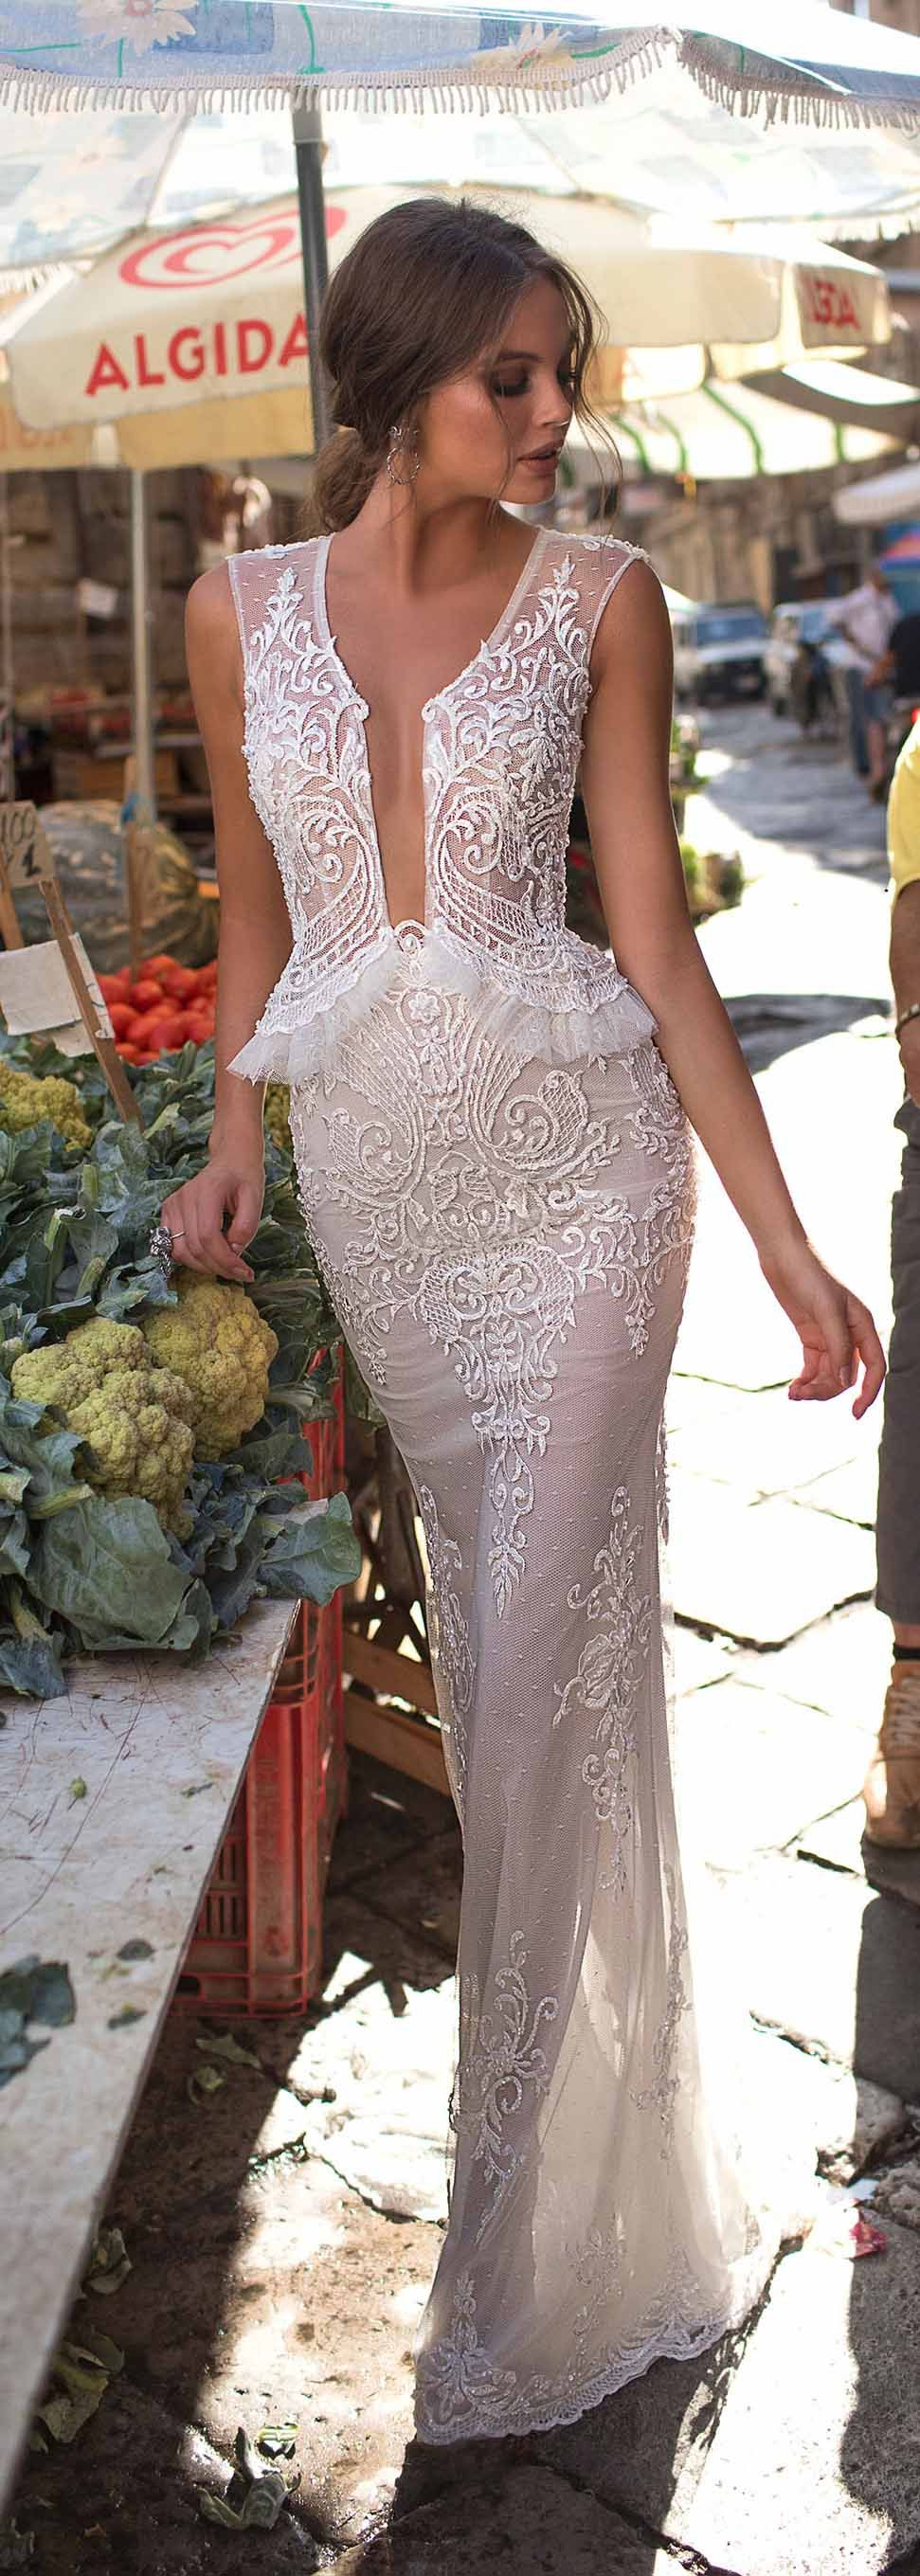 The stunning britney style from the new musebyberta sicily